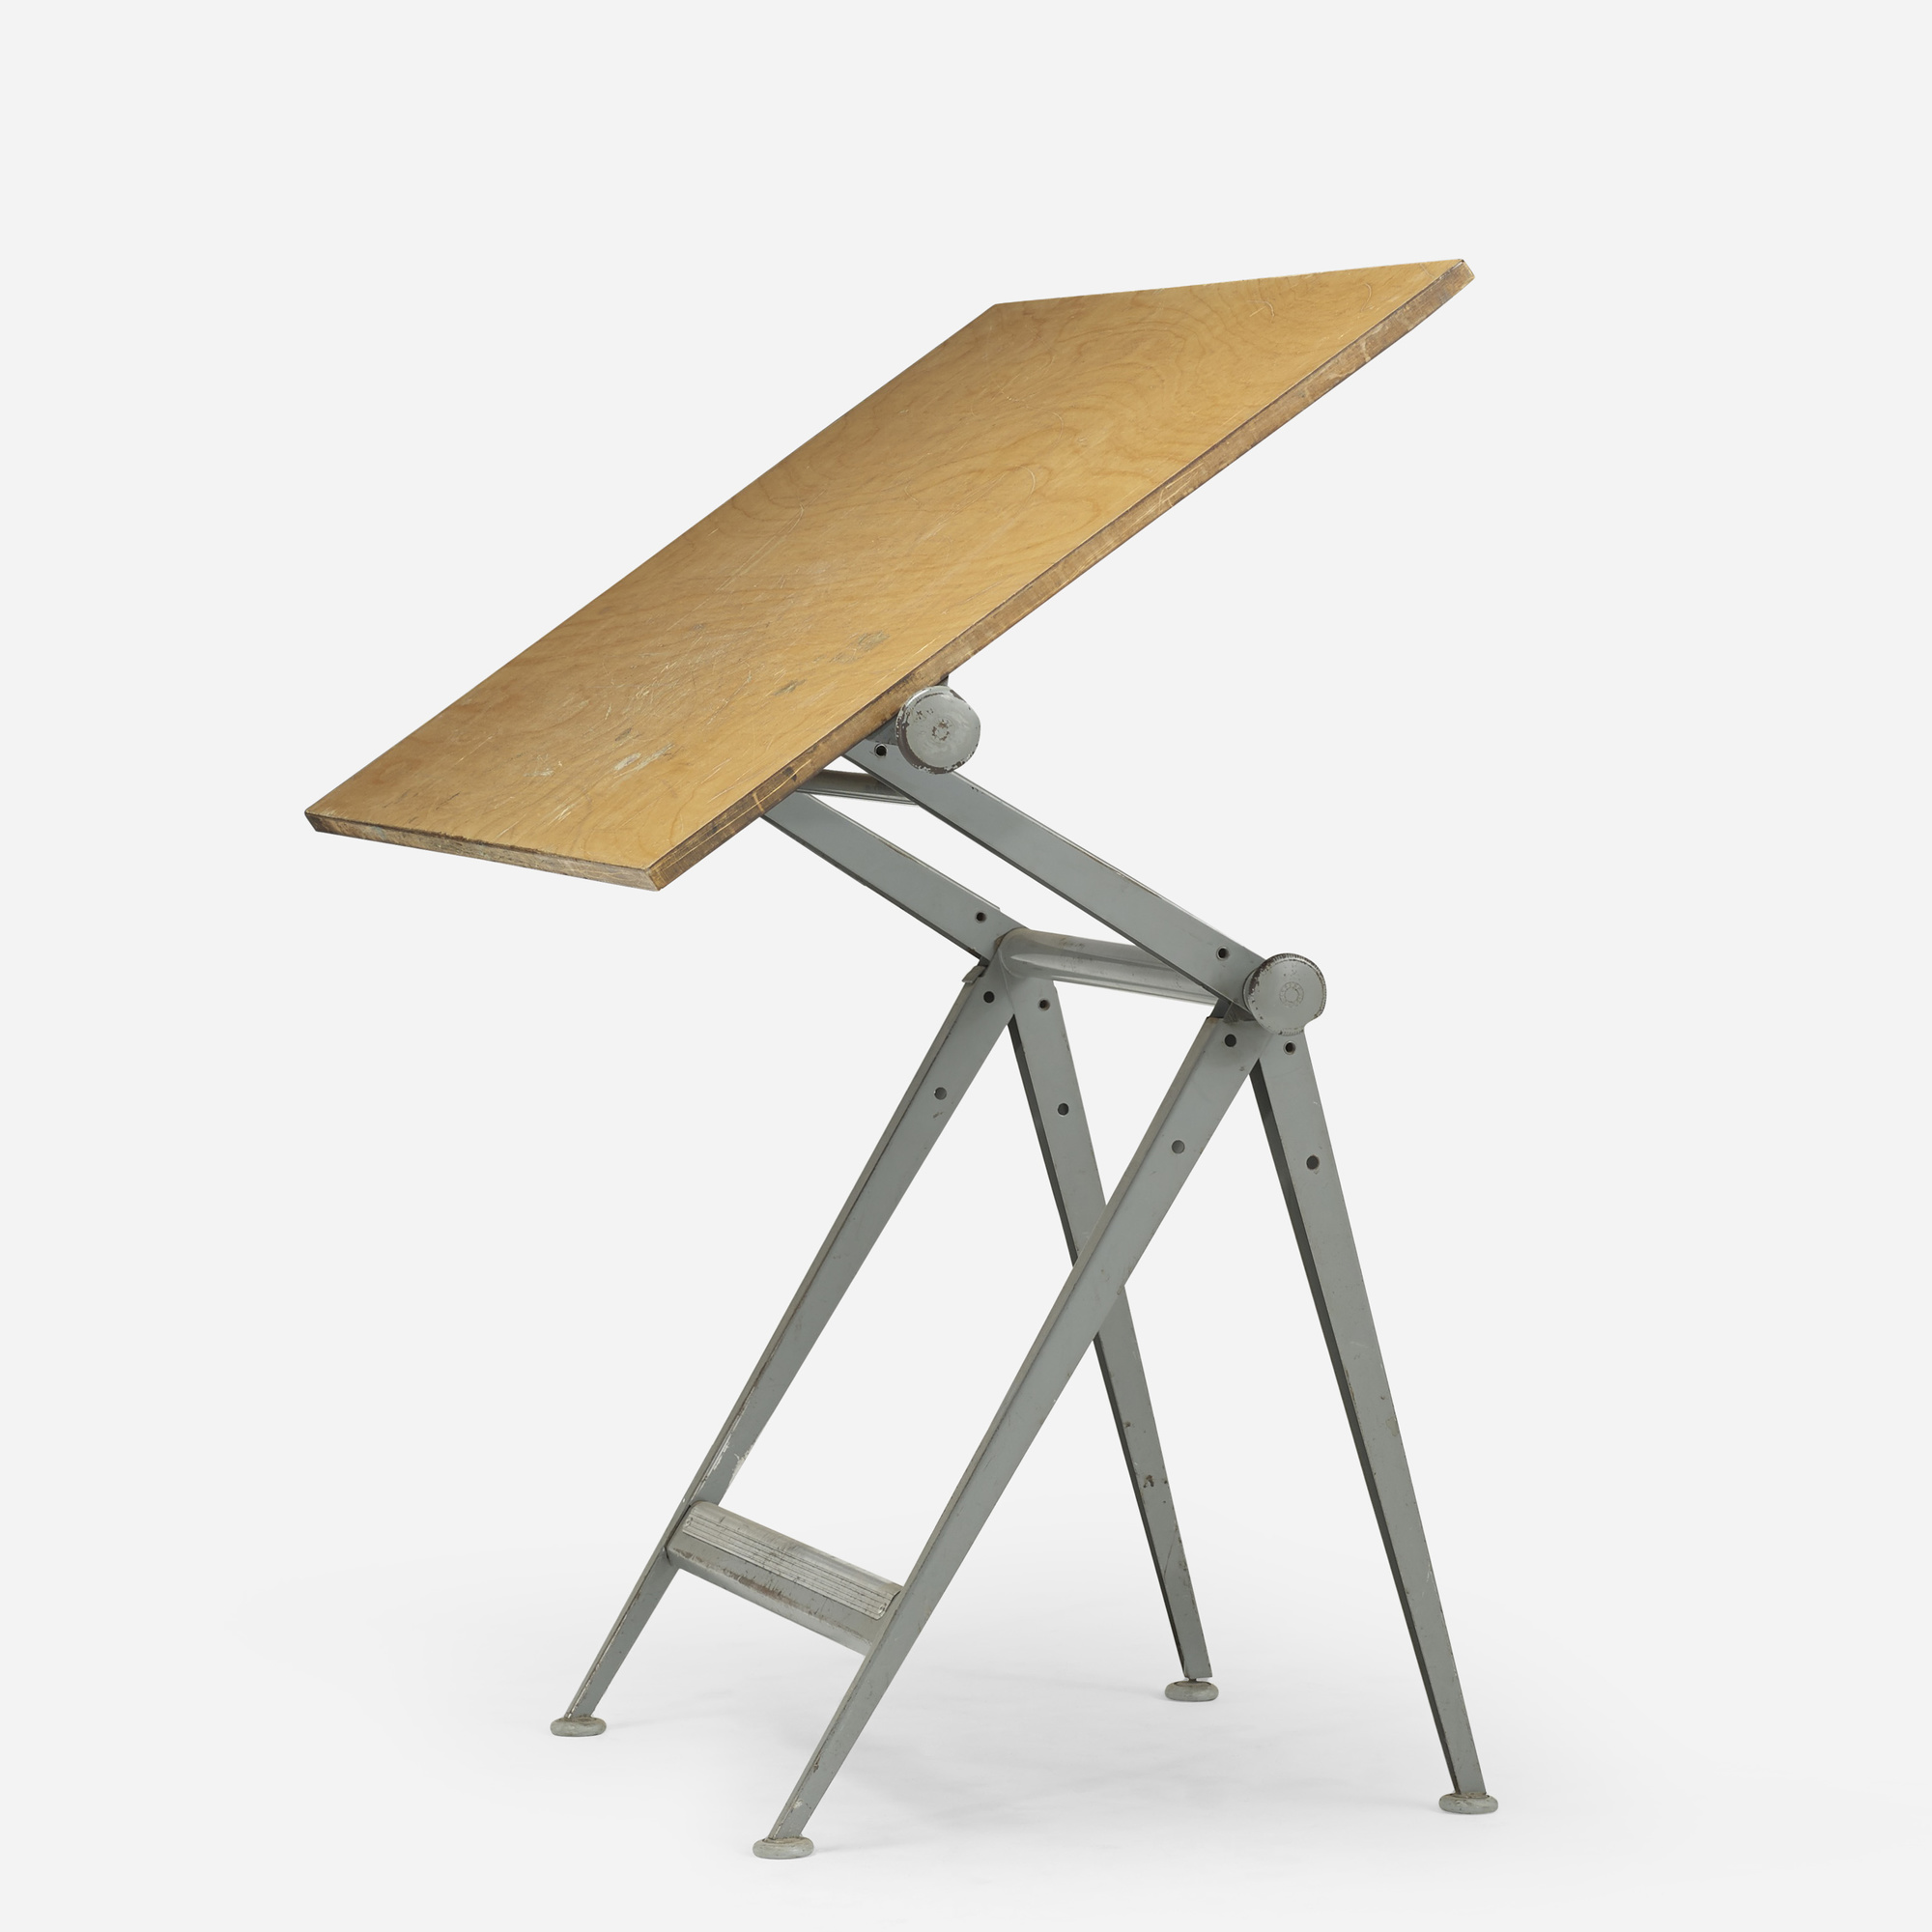 Modern drafting table - 454 Wim Rietveld And Friso Kramer Drafting Table 1 Of 3